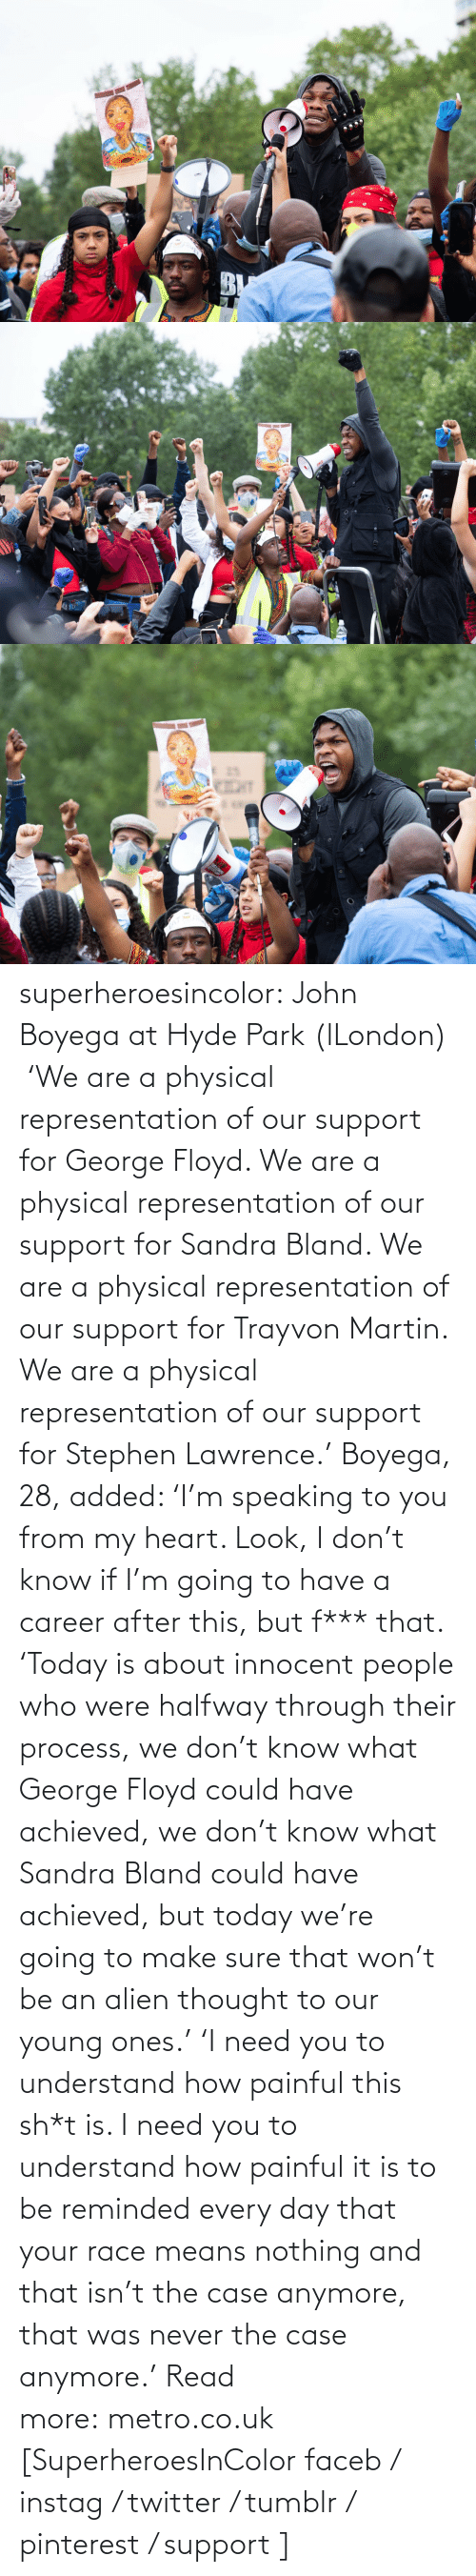 Going To: superheroesincolor:  John Boyega at Hyde Park (lLondon)     'We are a physical representation of our support for George Floyd. We are a physical representation of our support for Sandra Bland. We are a physical representation of our support for Trayvon Martin. We are a physical representation of our support for Stephen Lawrence.' Boyega, 28, added: 'I'm speaking to you from my heart. Look, I don't know if I'm going to have a career after this, but f*** that. 'Today is about innocent people who were halfway through their process, we don't know what George Floyd could have achieved, we don't know what Sandra Bland could have achieved, but today we're going to make sure that won't be an alien thought to our young ones.' 'I need you to understand how painful this sh*t is. I need you to understand how painful it is to be reminded every day that your race means nothing and that isn't the case anymore, that was never the case anymore.' Read more: metro.co.uk   [SuperheroesInColor faceb / instag / twitter / tumblr / pinterest / support ]